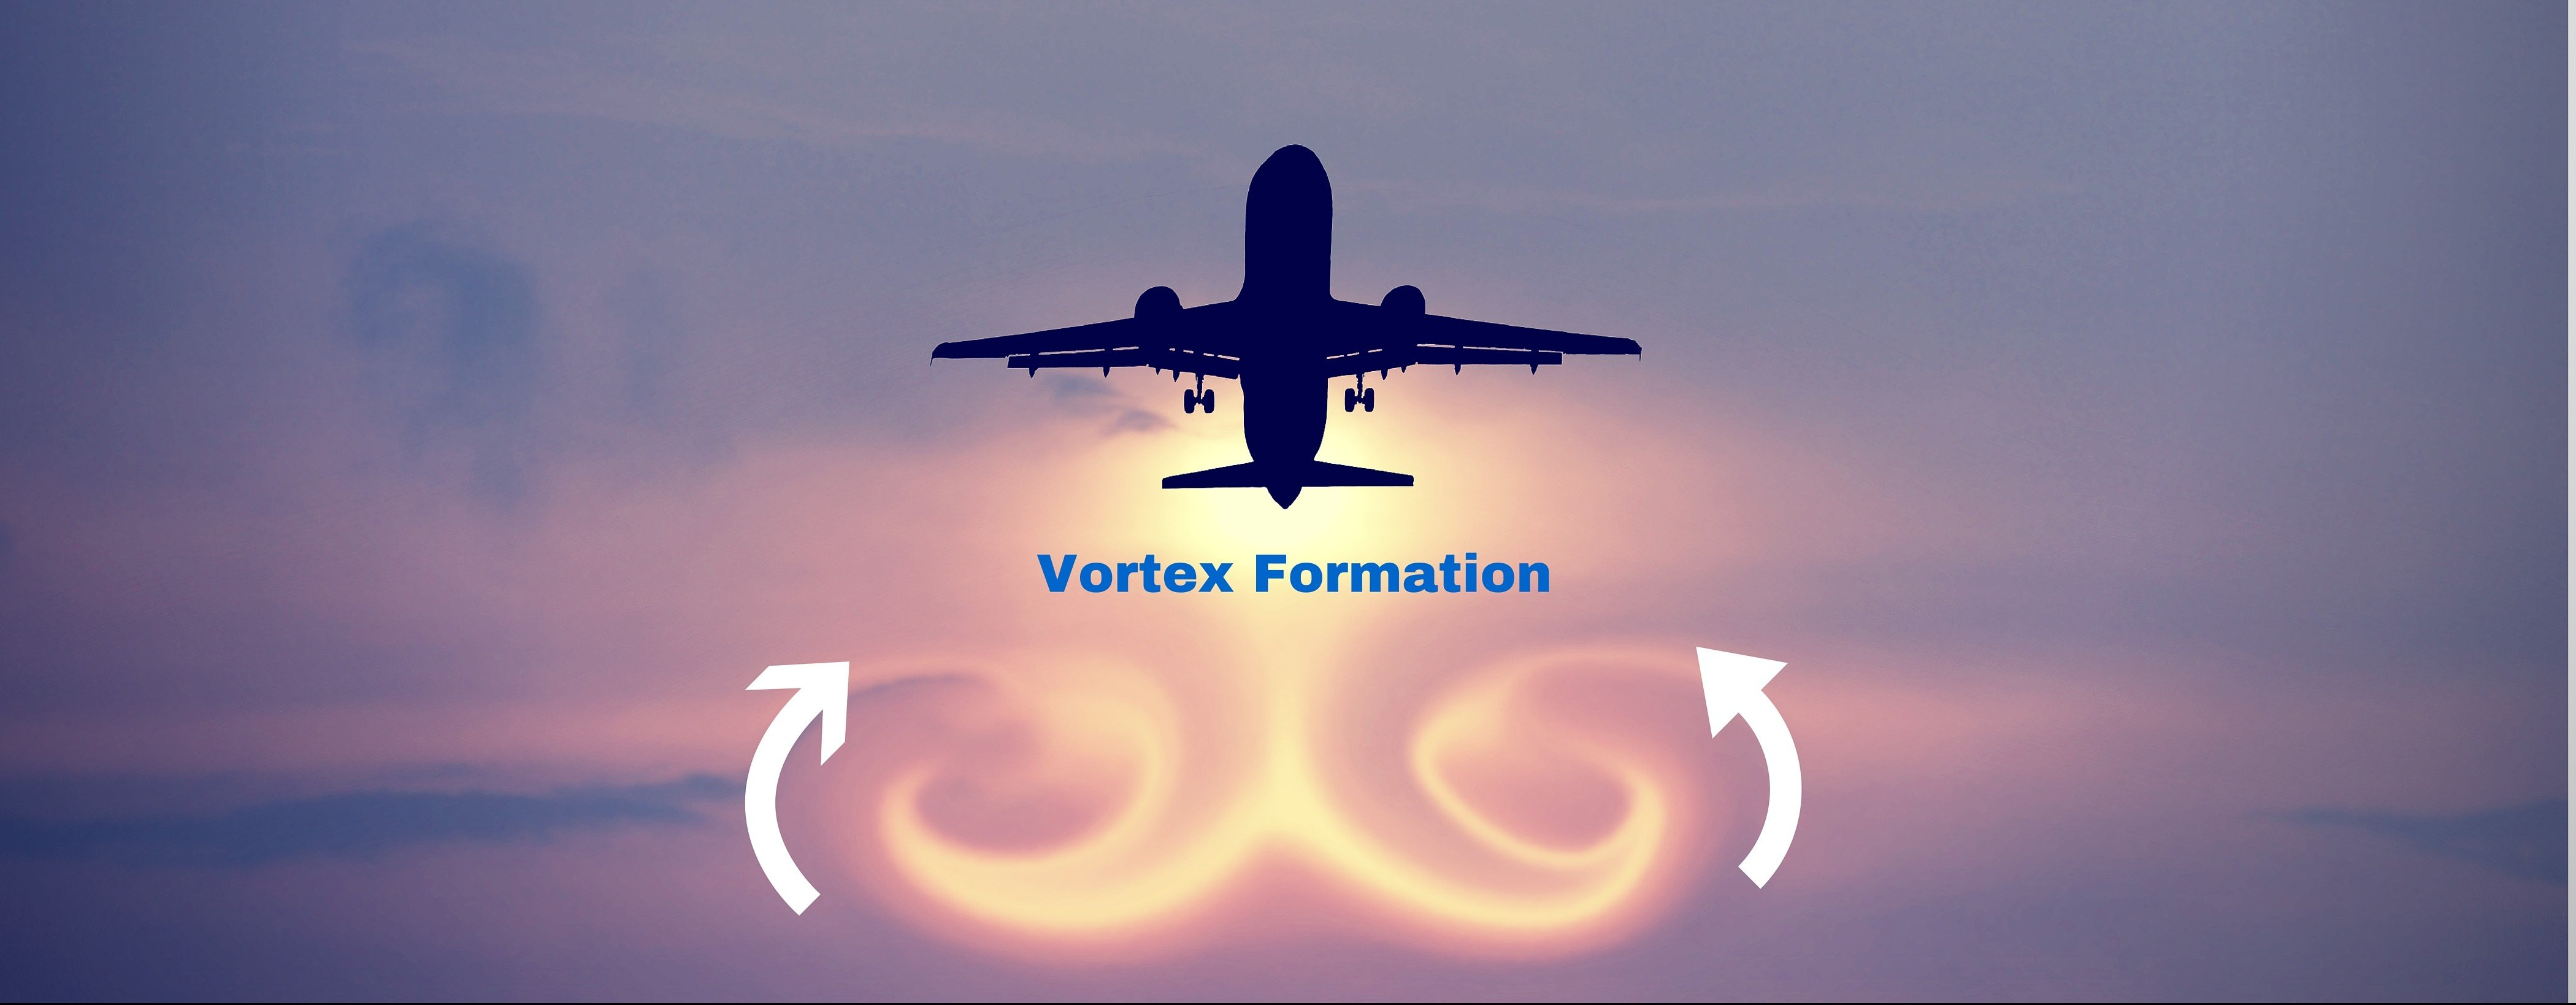 Vortex formation